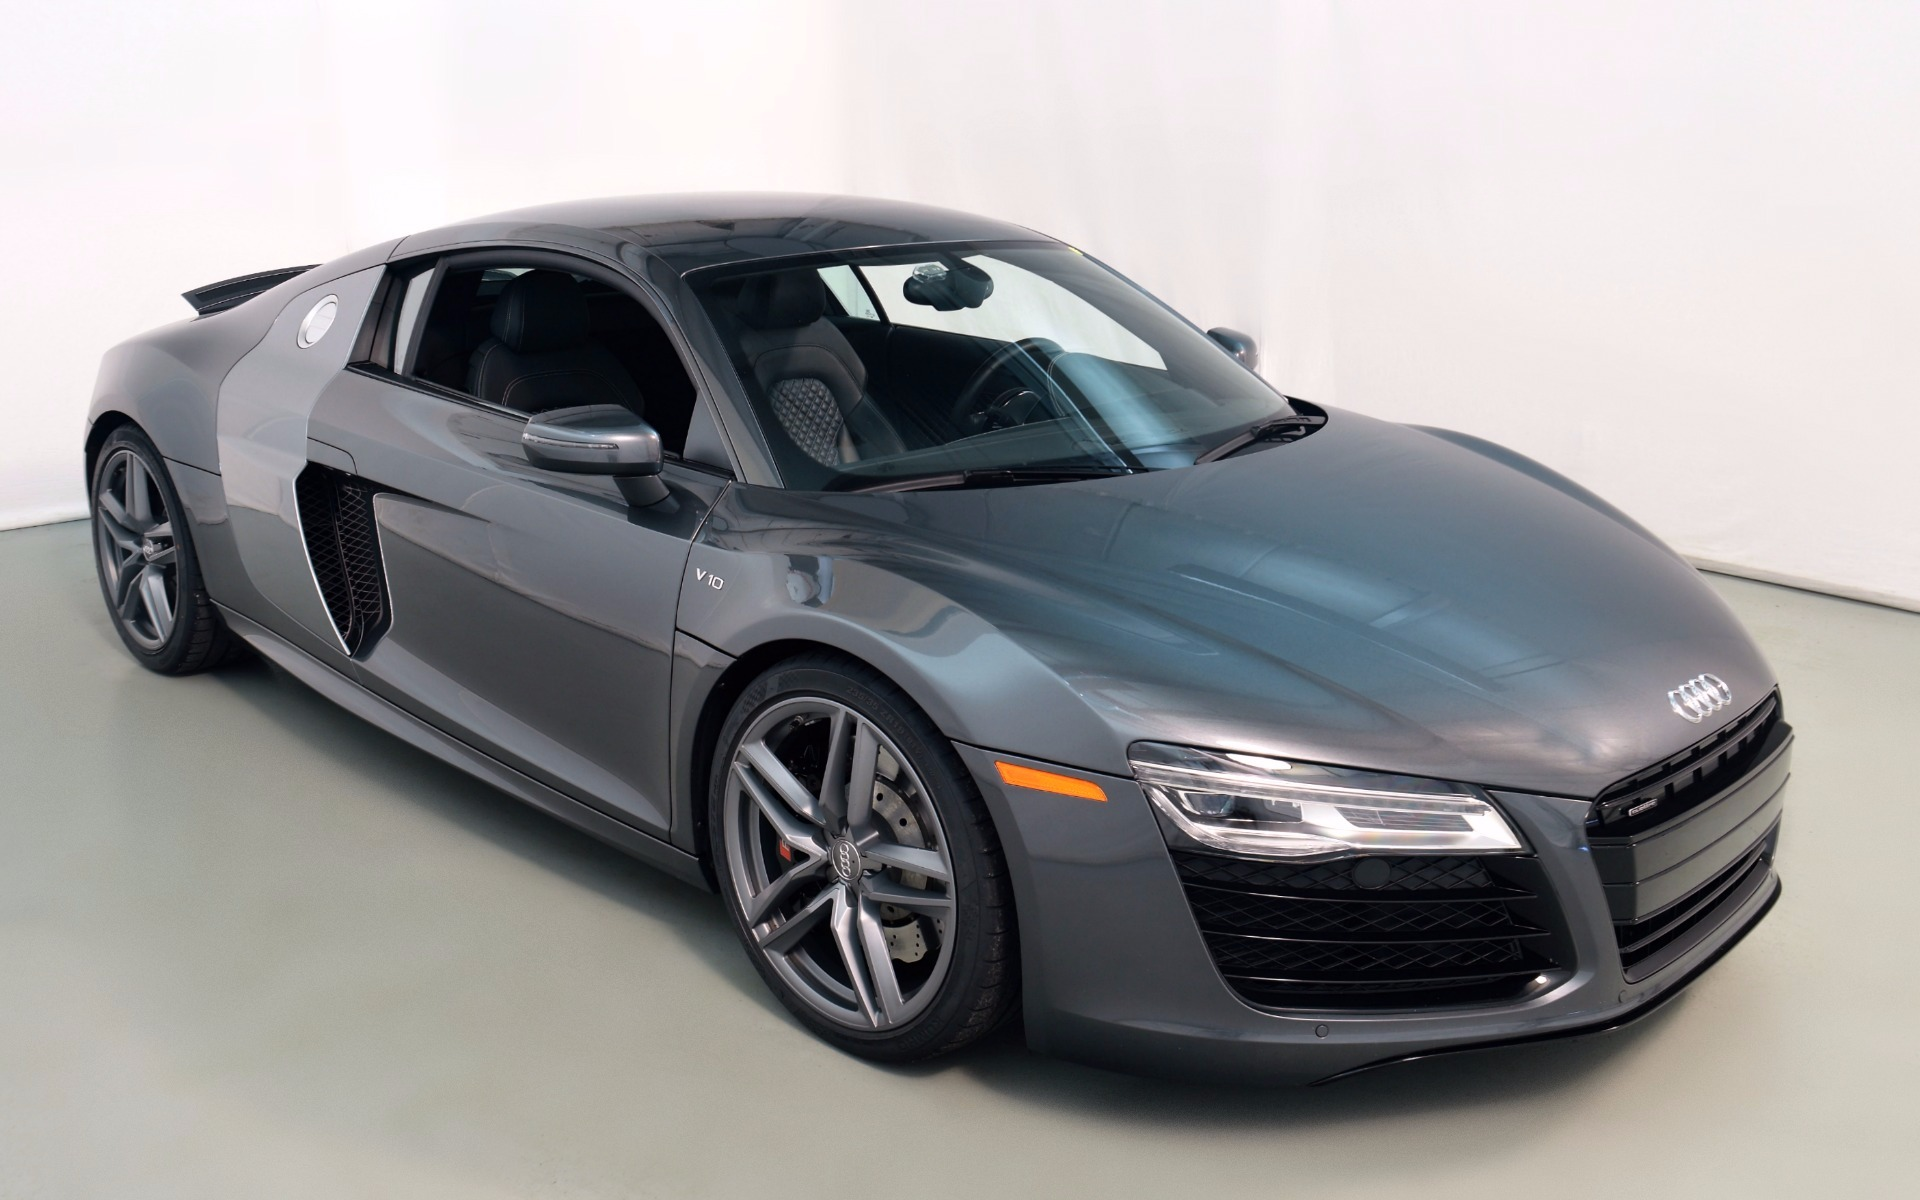 Audi R8 Monthly Payment >> 2014 Audi R8 5.2 quattro For Sale in Norwell, MA 00746 | Mclaren Boston